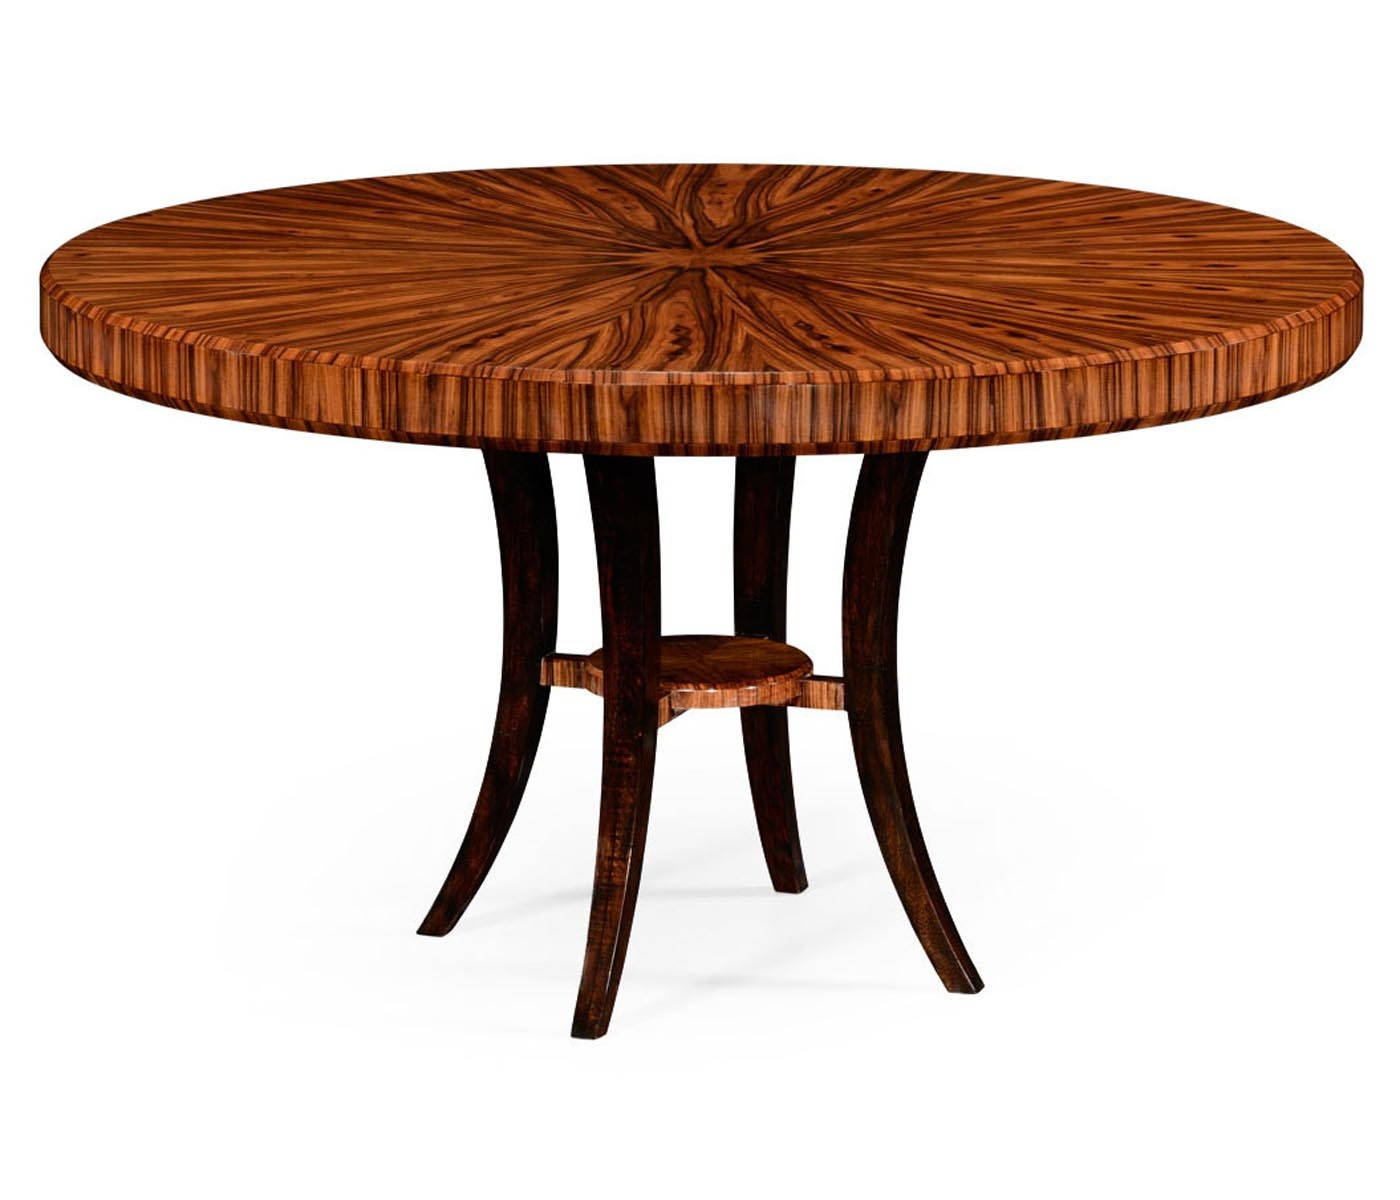 6 seater round dining table swanky interiors for On the dining table